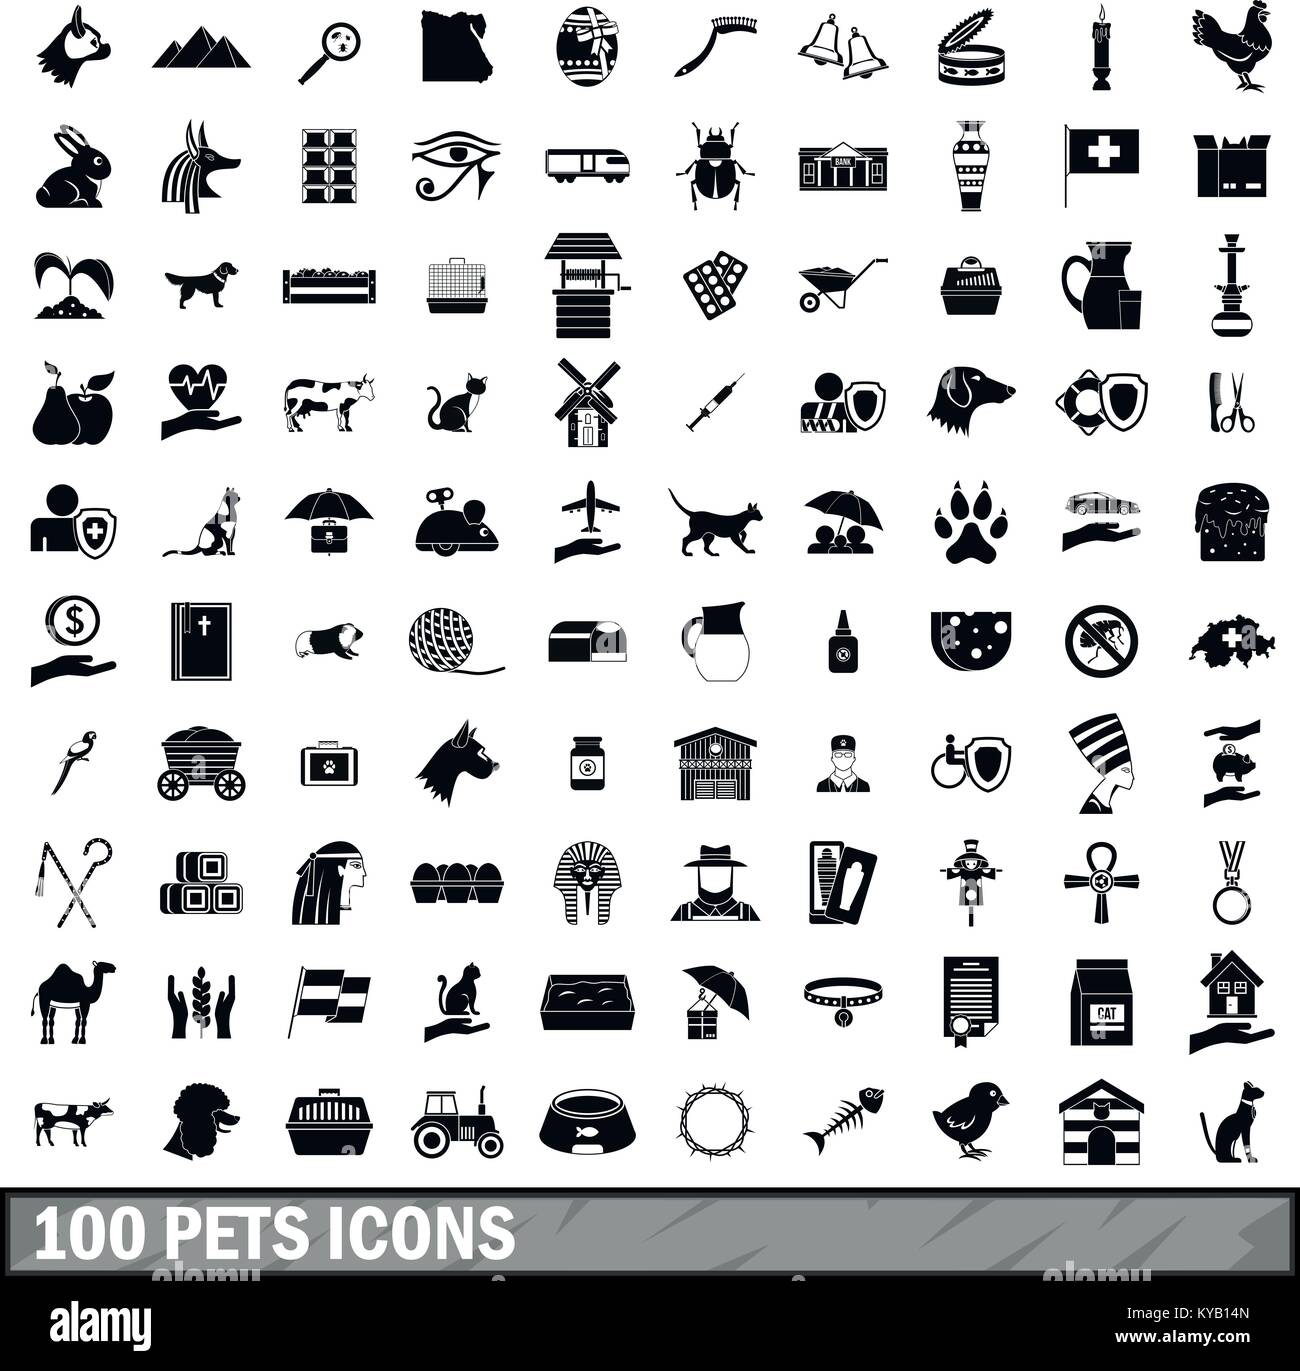 100 pets icons set in simple style for any design vector illustration - Stock Image